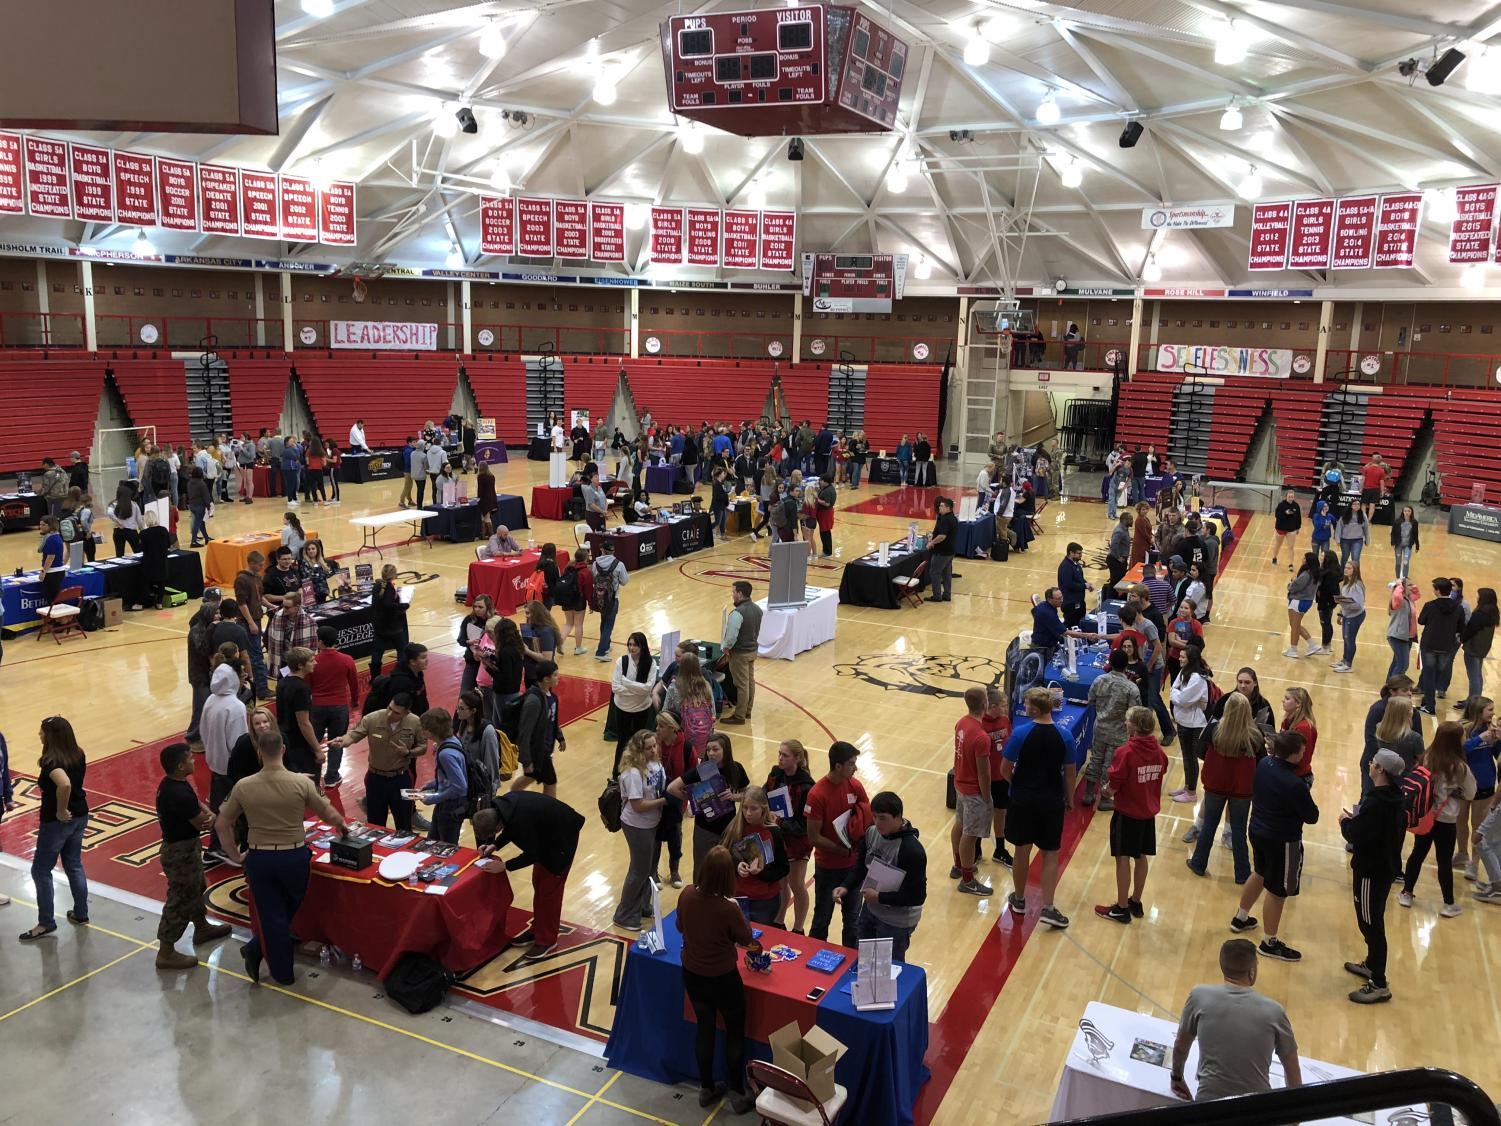 Students at the college fair.